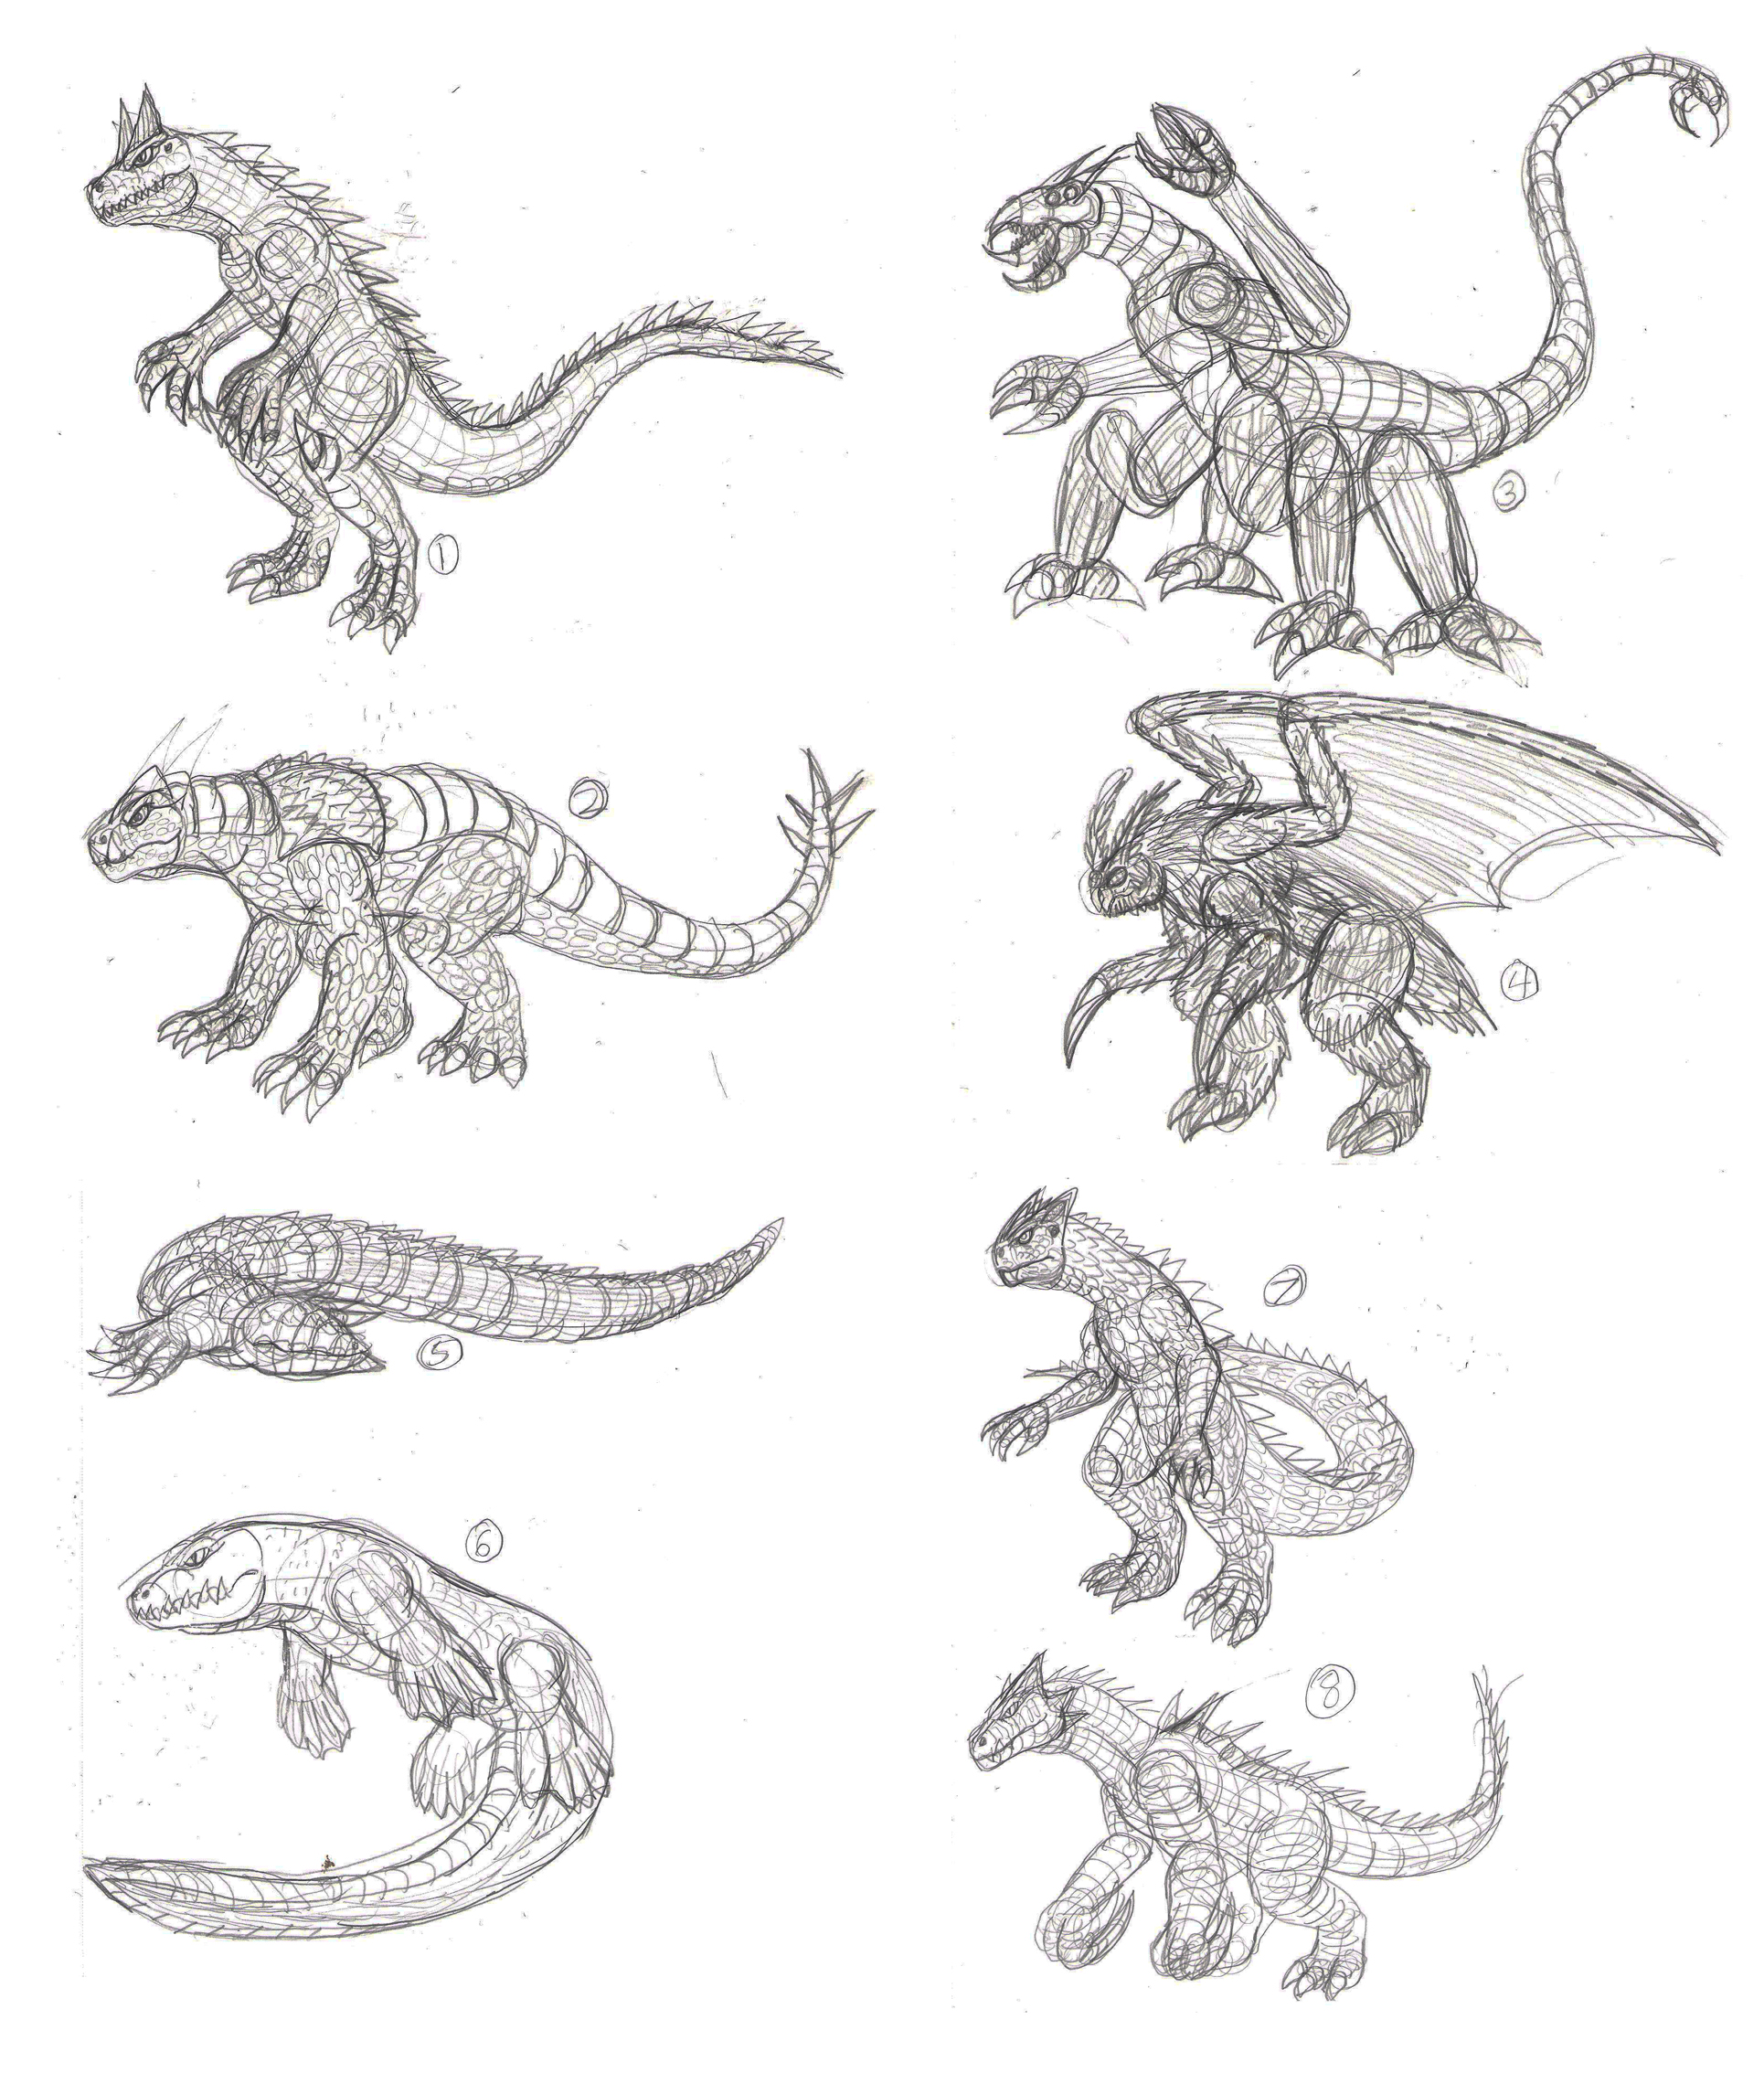 New Kaiju Designs By JacobSpencerKaiju79 On DeviantArt